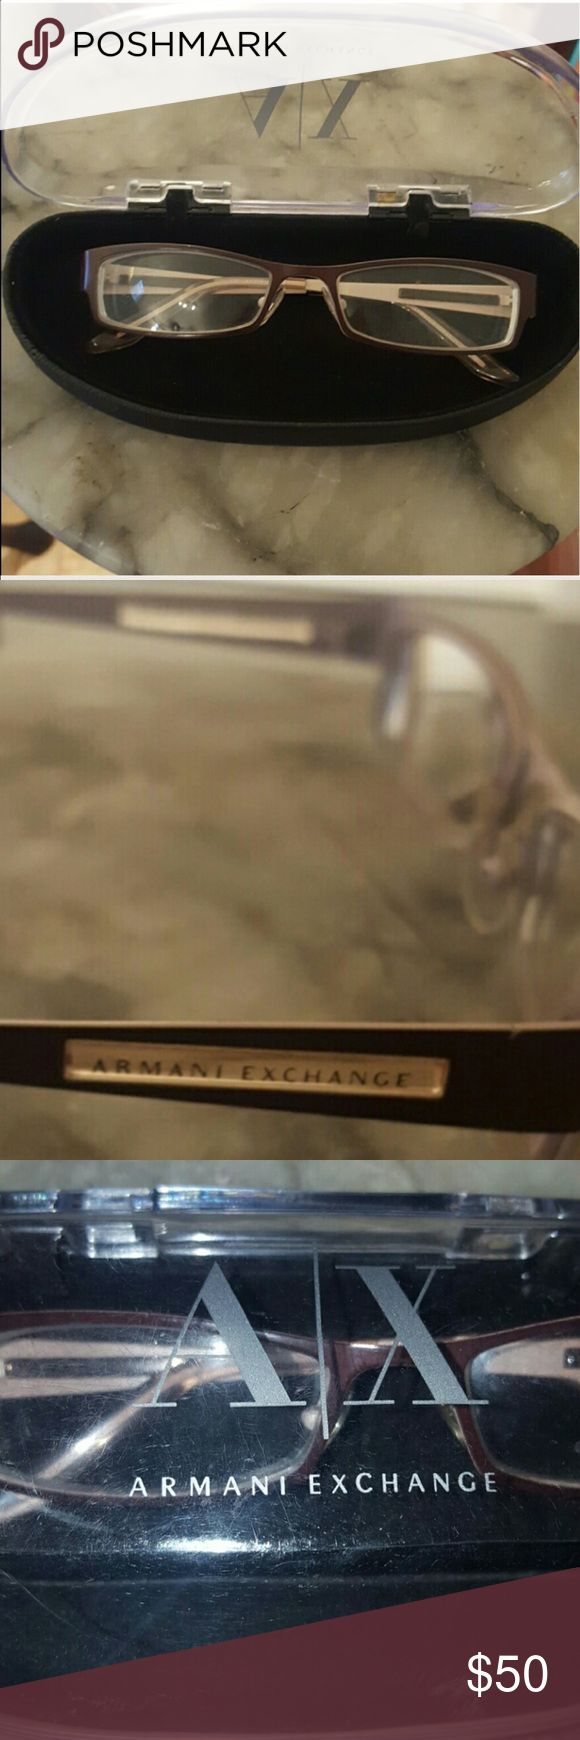 Armani Exchange eyeglasses ◑▽ (⊙o⊙)SALE(┬_┬) Armani Exchange...Authentic, Excellent Condition. Comes with original case, glass cleaning cloth... Color is brown outside &  light pink inside...Very fashionable...You'll Love these glasses!! A/X Armani Exchange Accessories Glasses